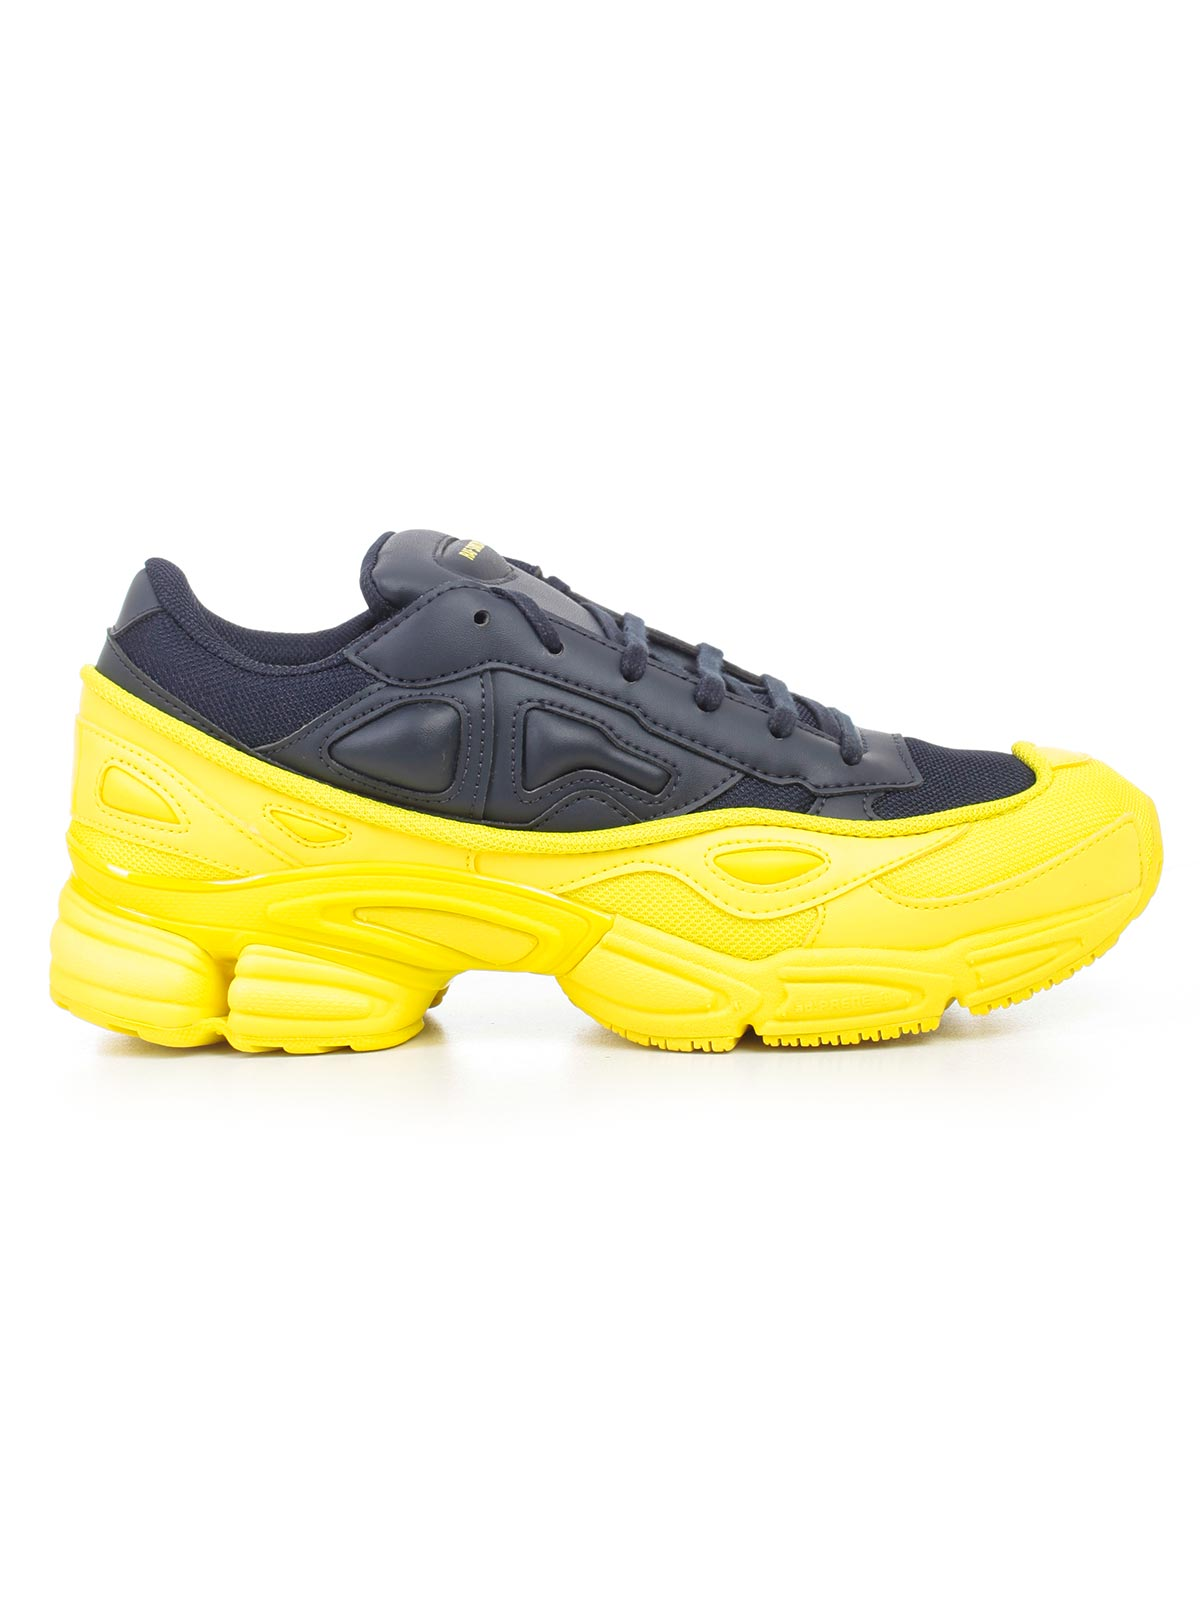 825d01fa6526fe Adidas X Raf Simons Shoes F34267 - BYELLOW NTNAVY NYNAVY.Bernardelli Store  - Online fashion store for Men and Women